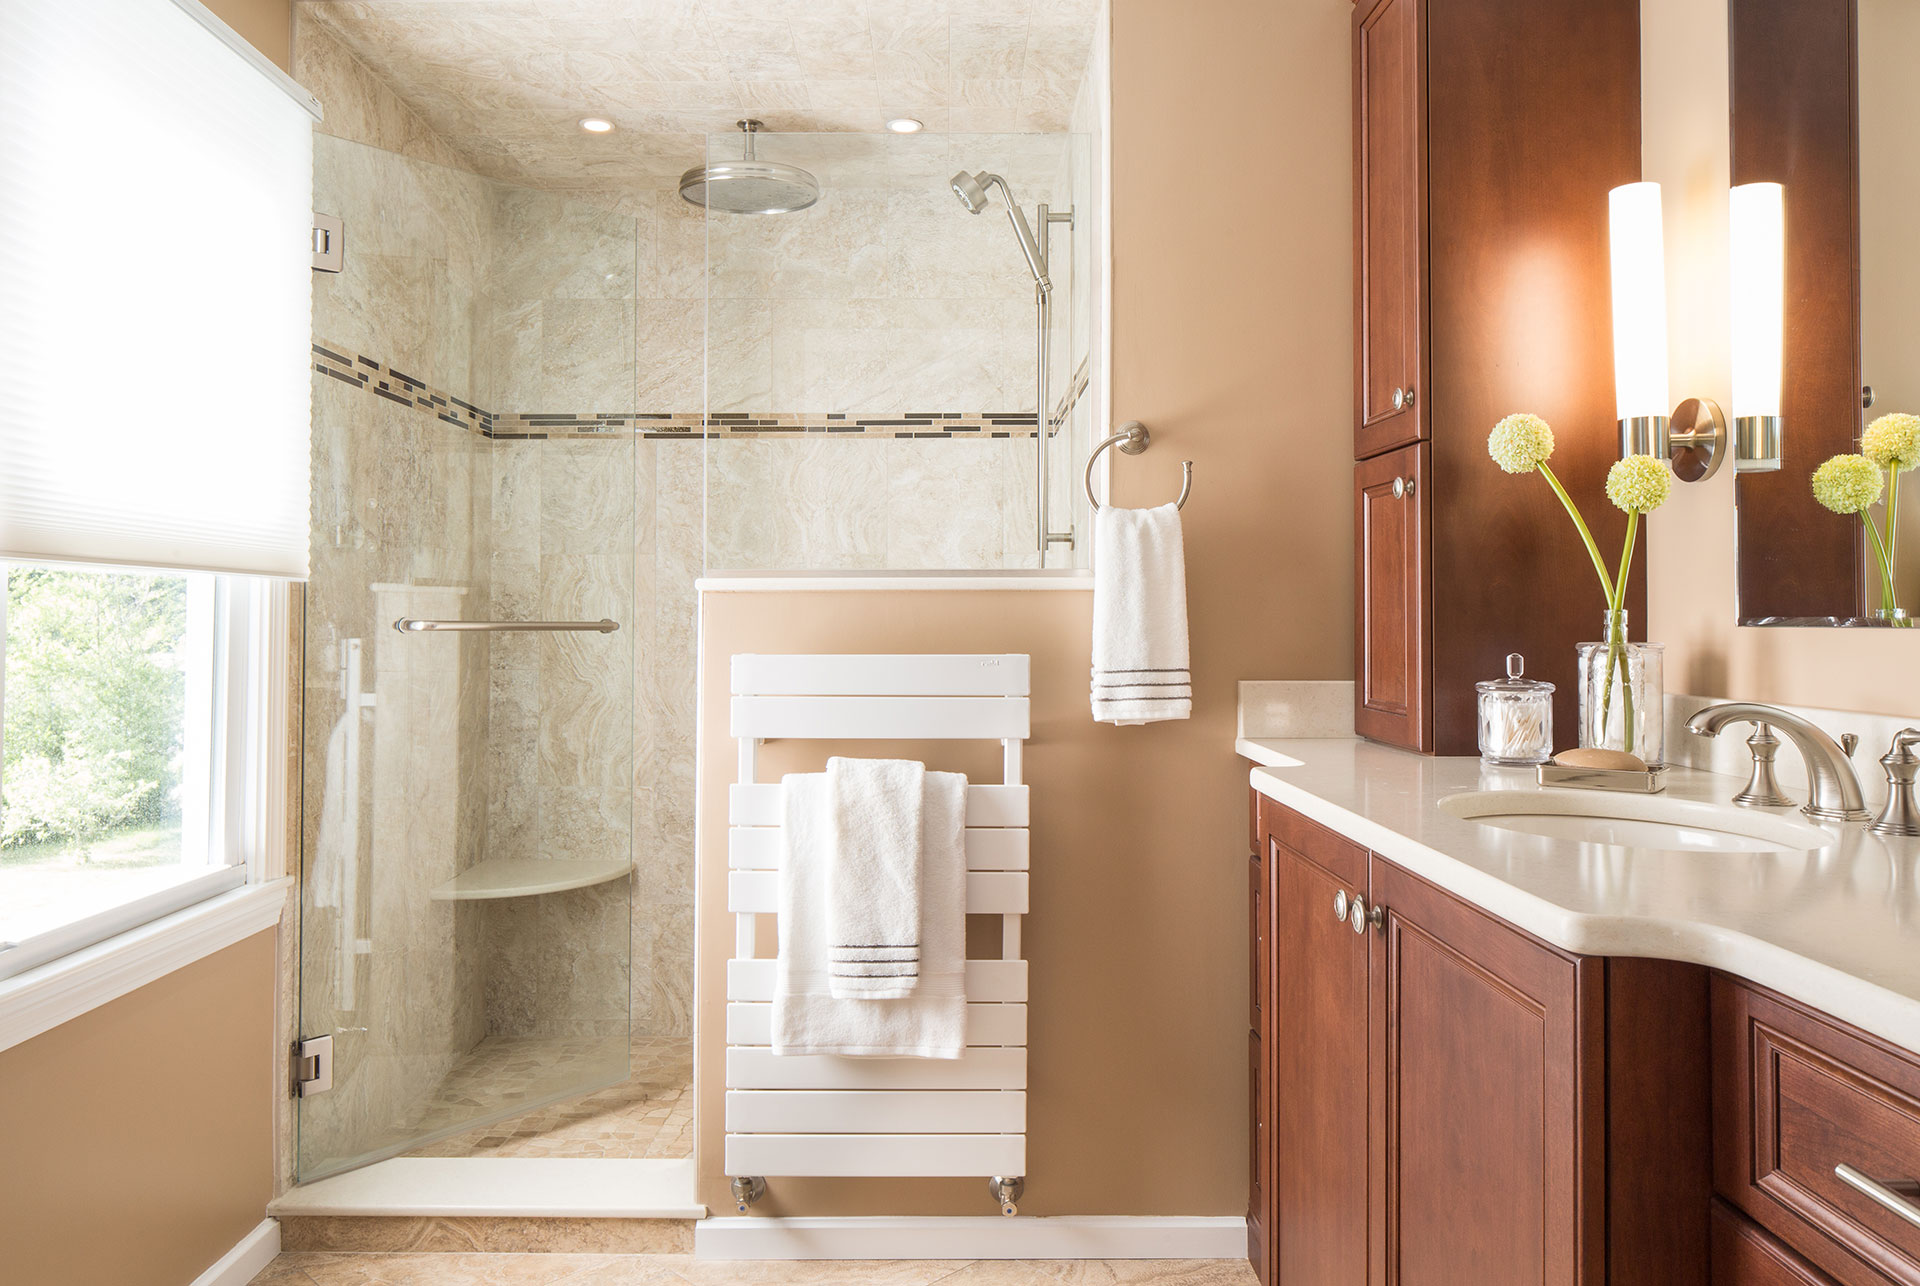 Bathroom Remodeling Ri Pleasing Kitchen & Bath Gallery Design Showrooms Remodeling Ma Ri Ct Review